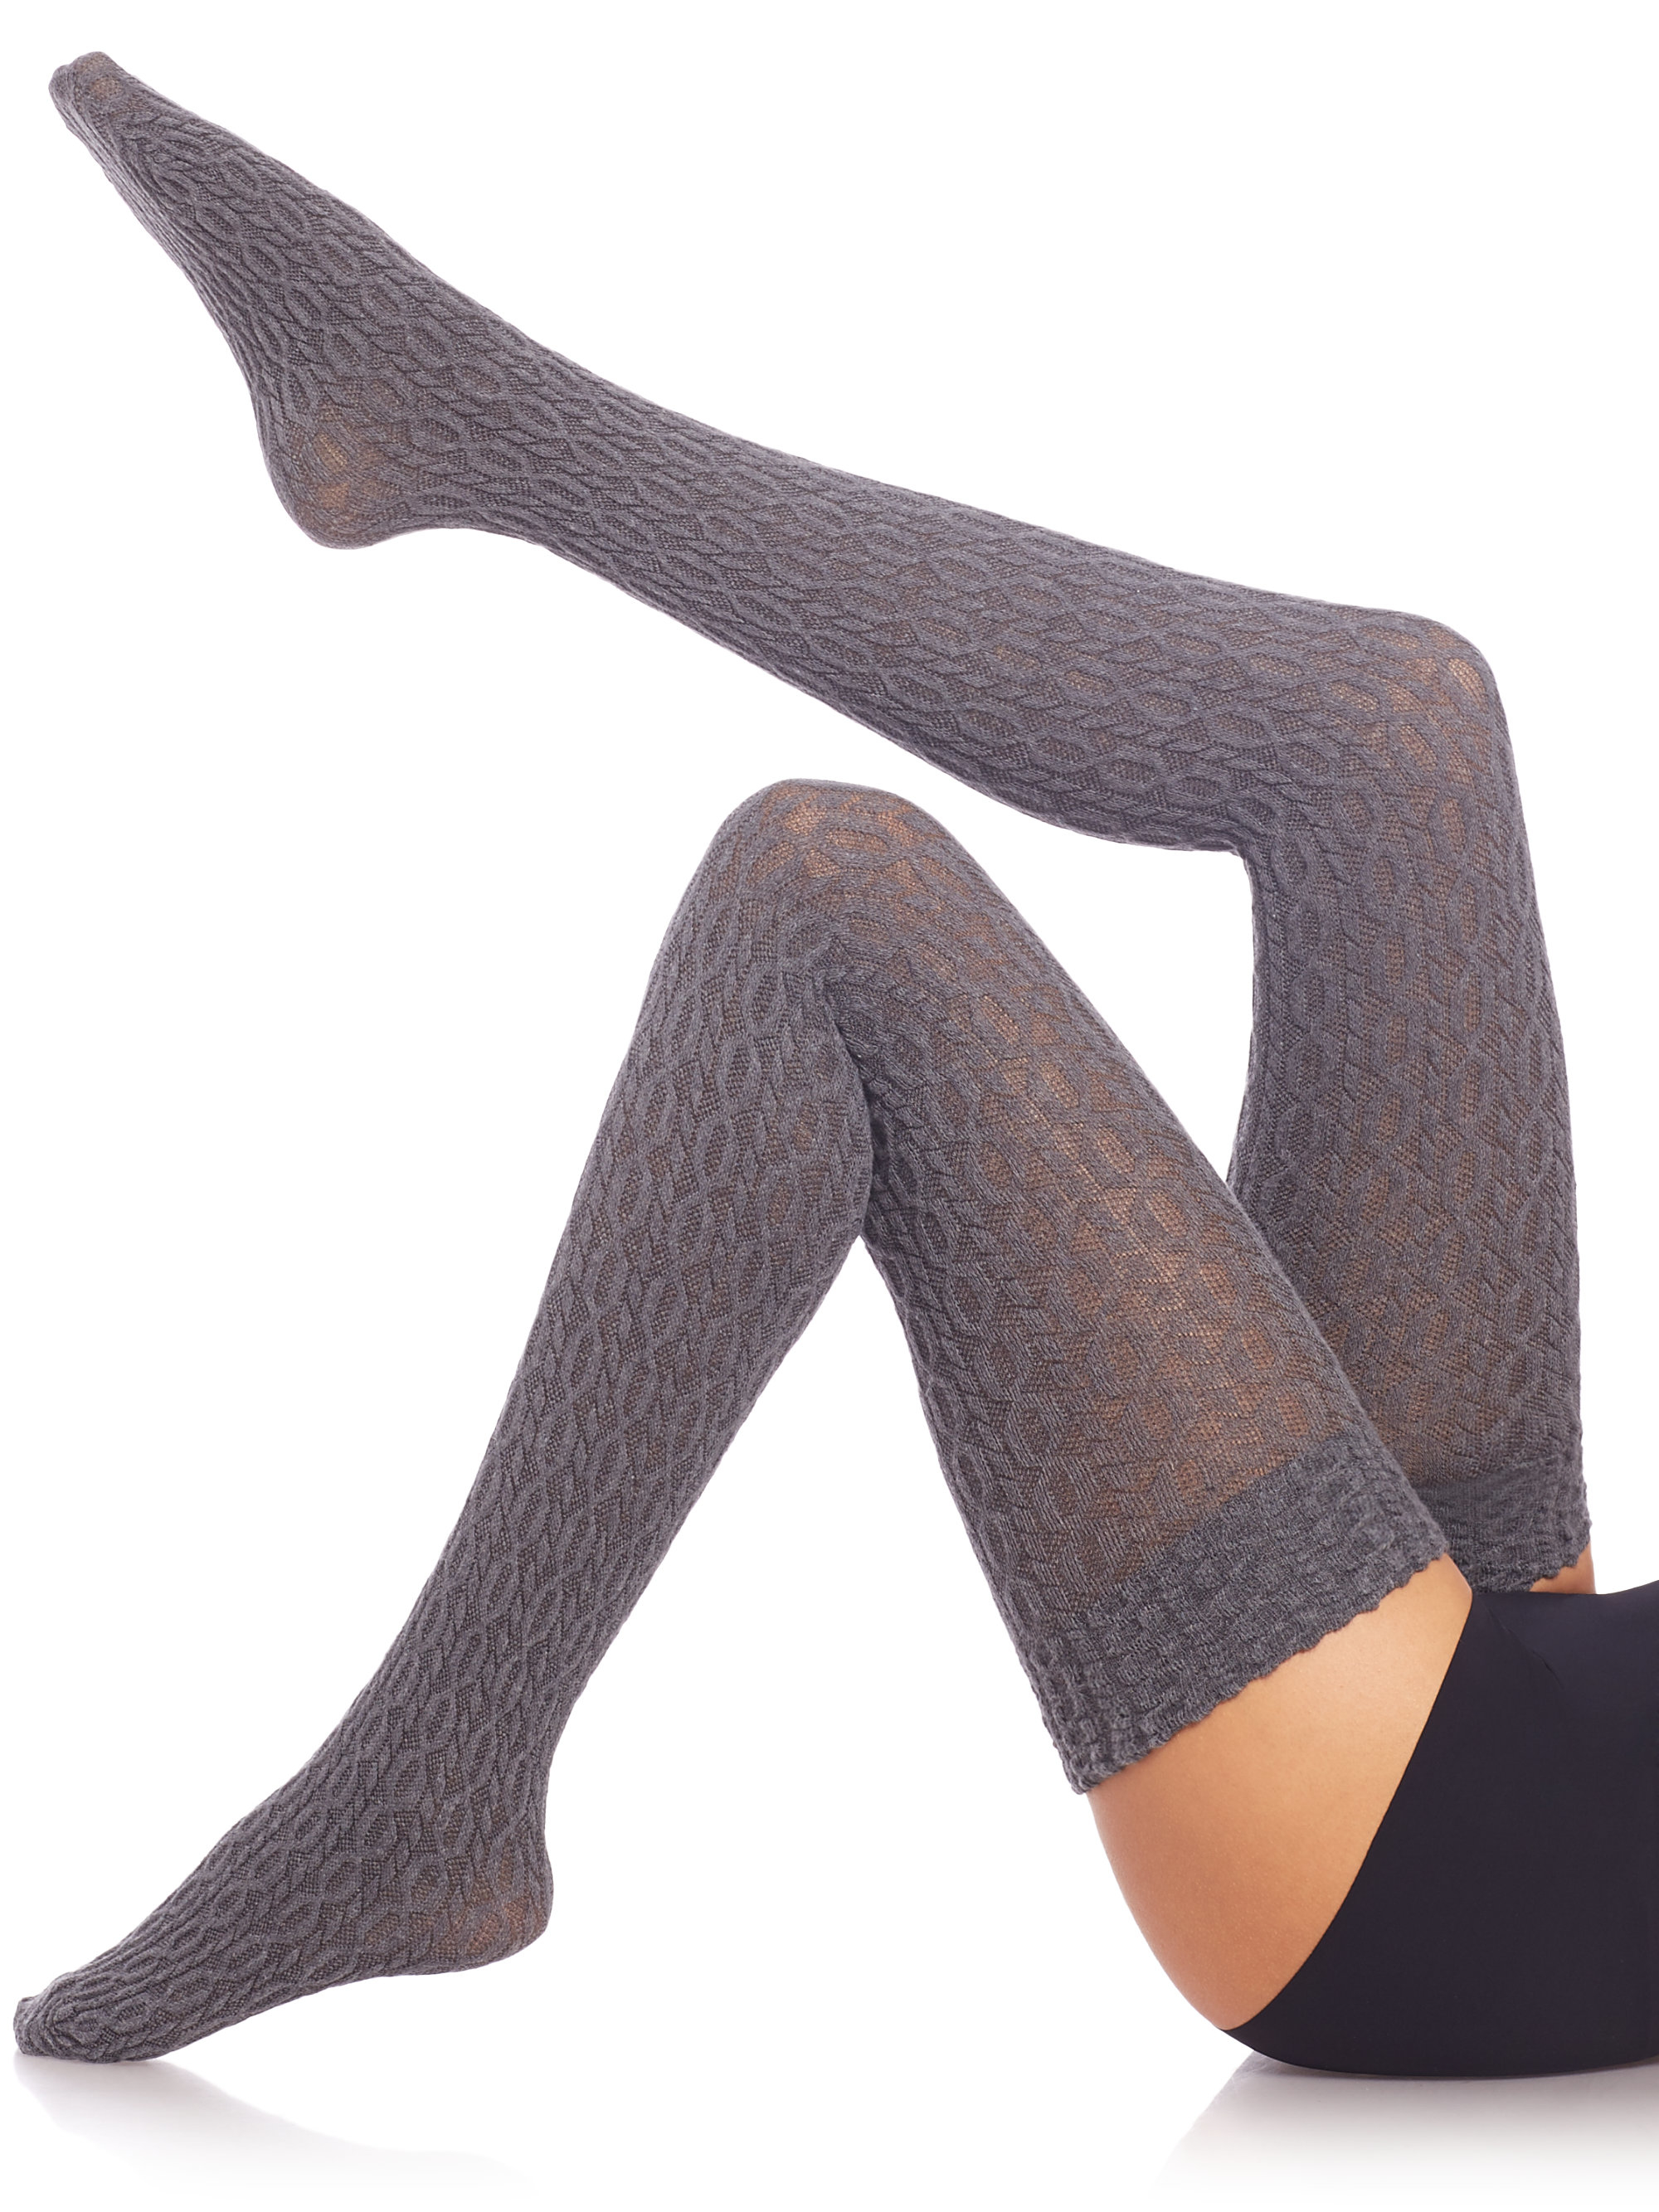 Lyst - Fogal Eyrin Cable-knit Thigh Highs in Gray 1f284e9ec